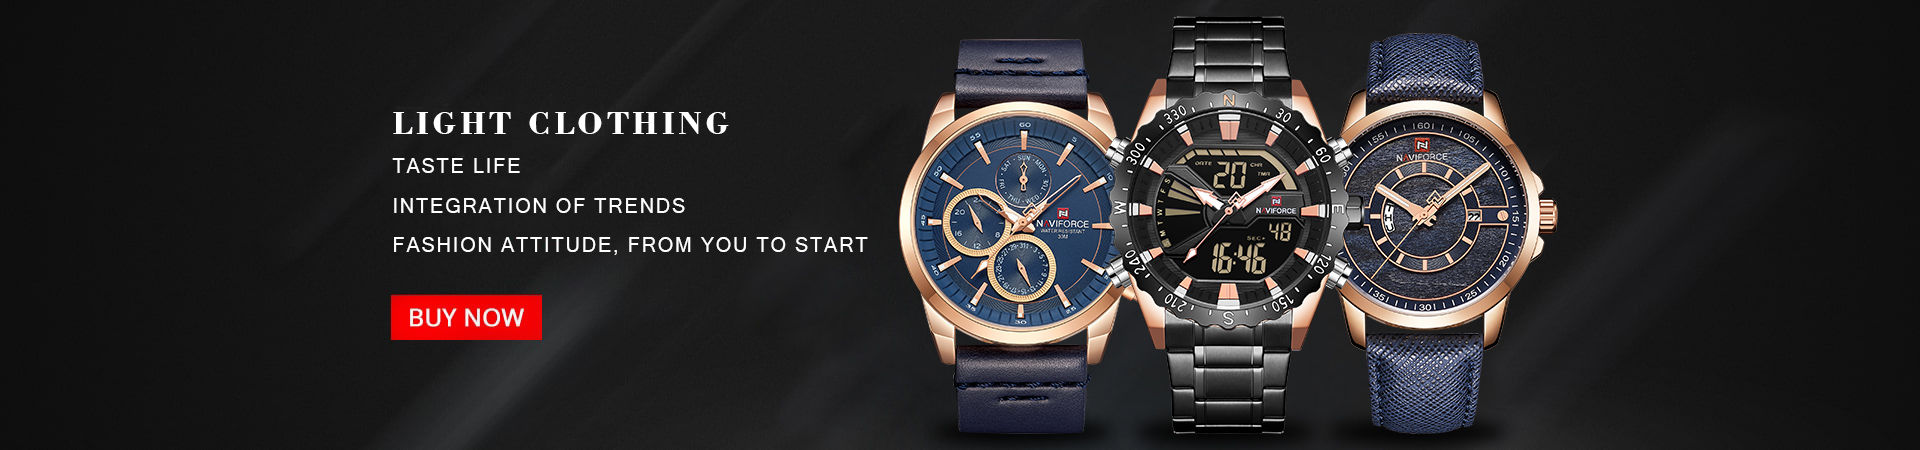 Men's Chronograph Watches - Naviforce